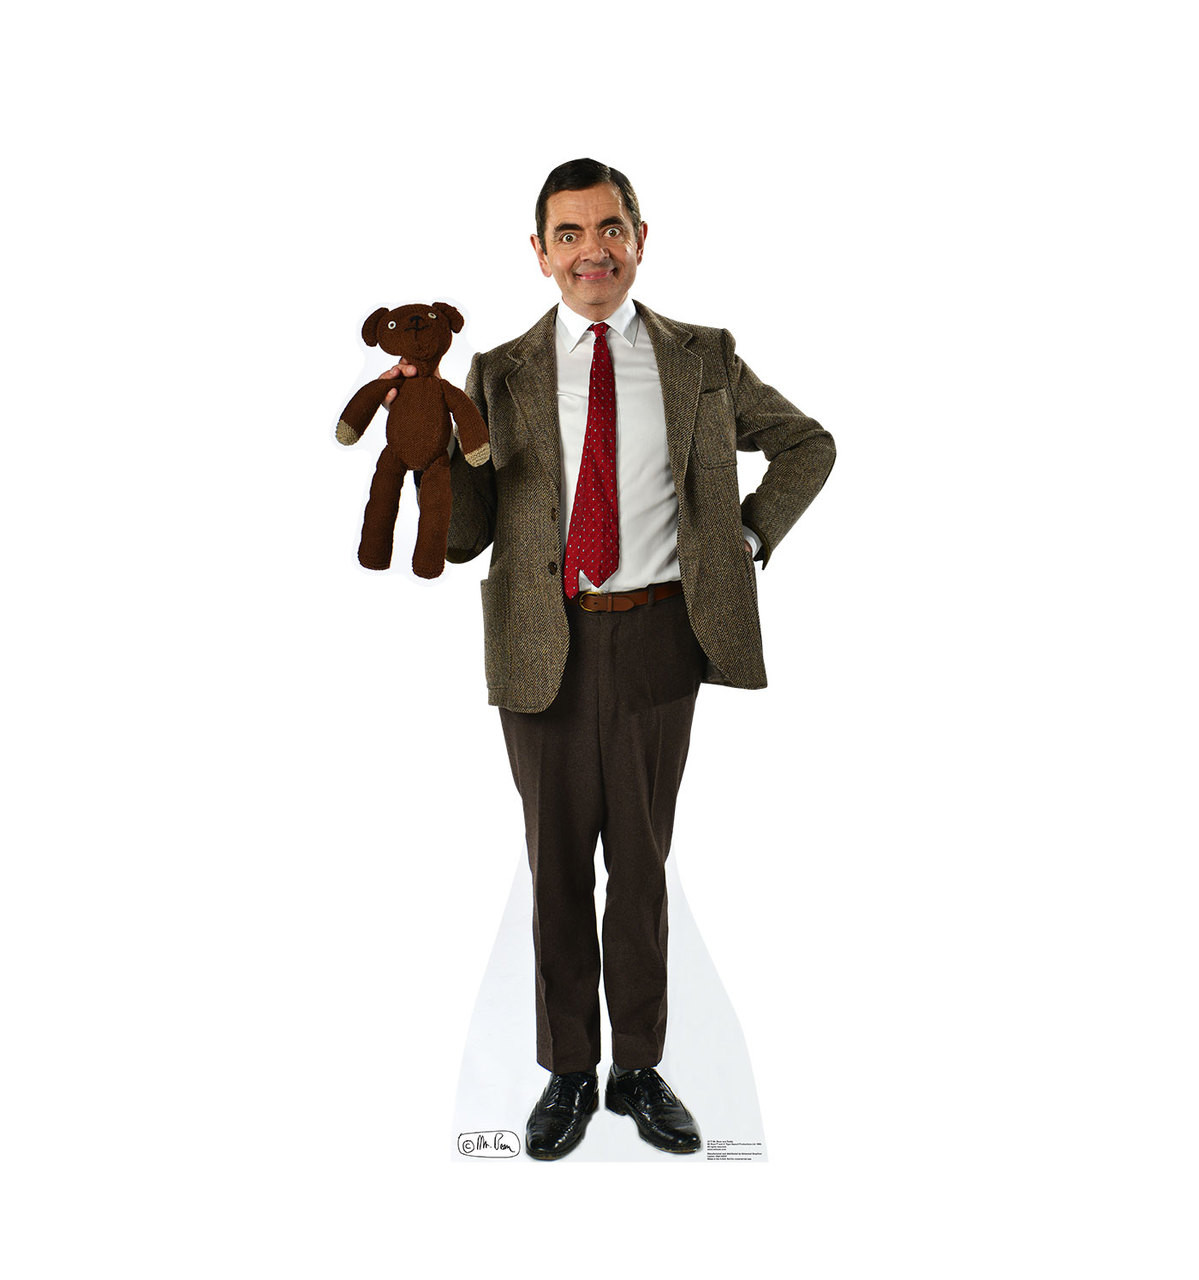 Life-size Mr. Bean and Teddy Cardboard Standup